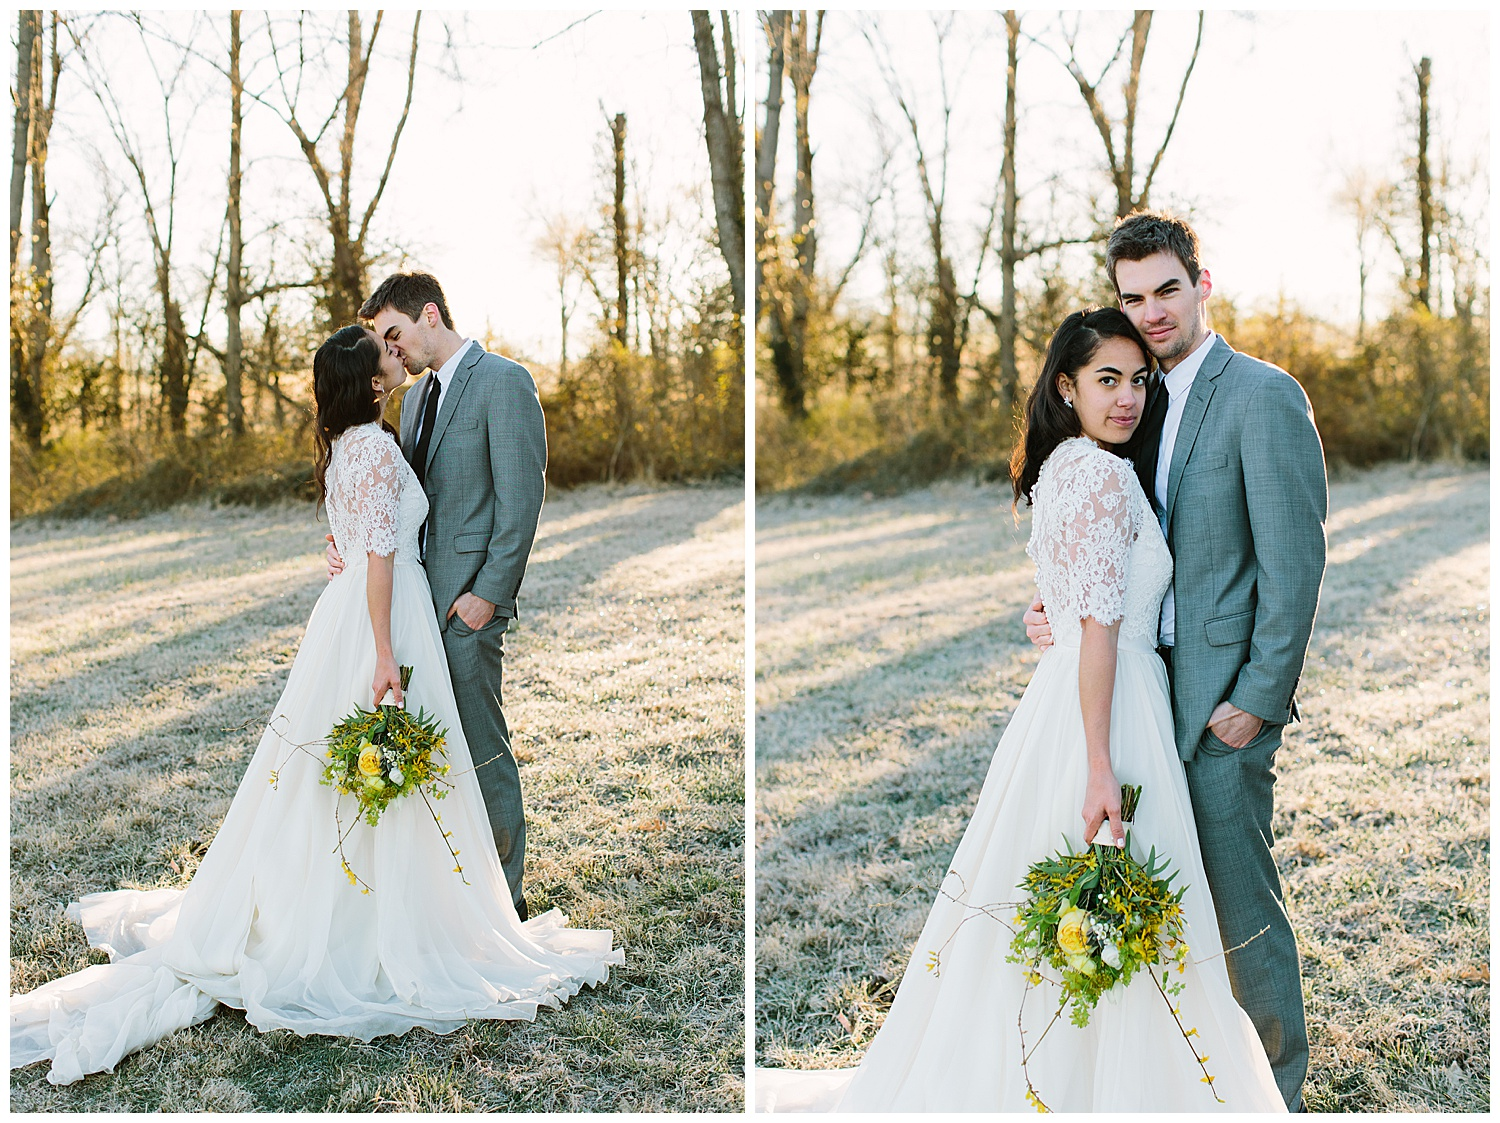 trent.and.kendra.photography.foxhollow.farm.elopement-79.jpg